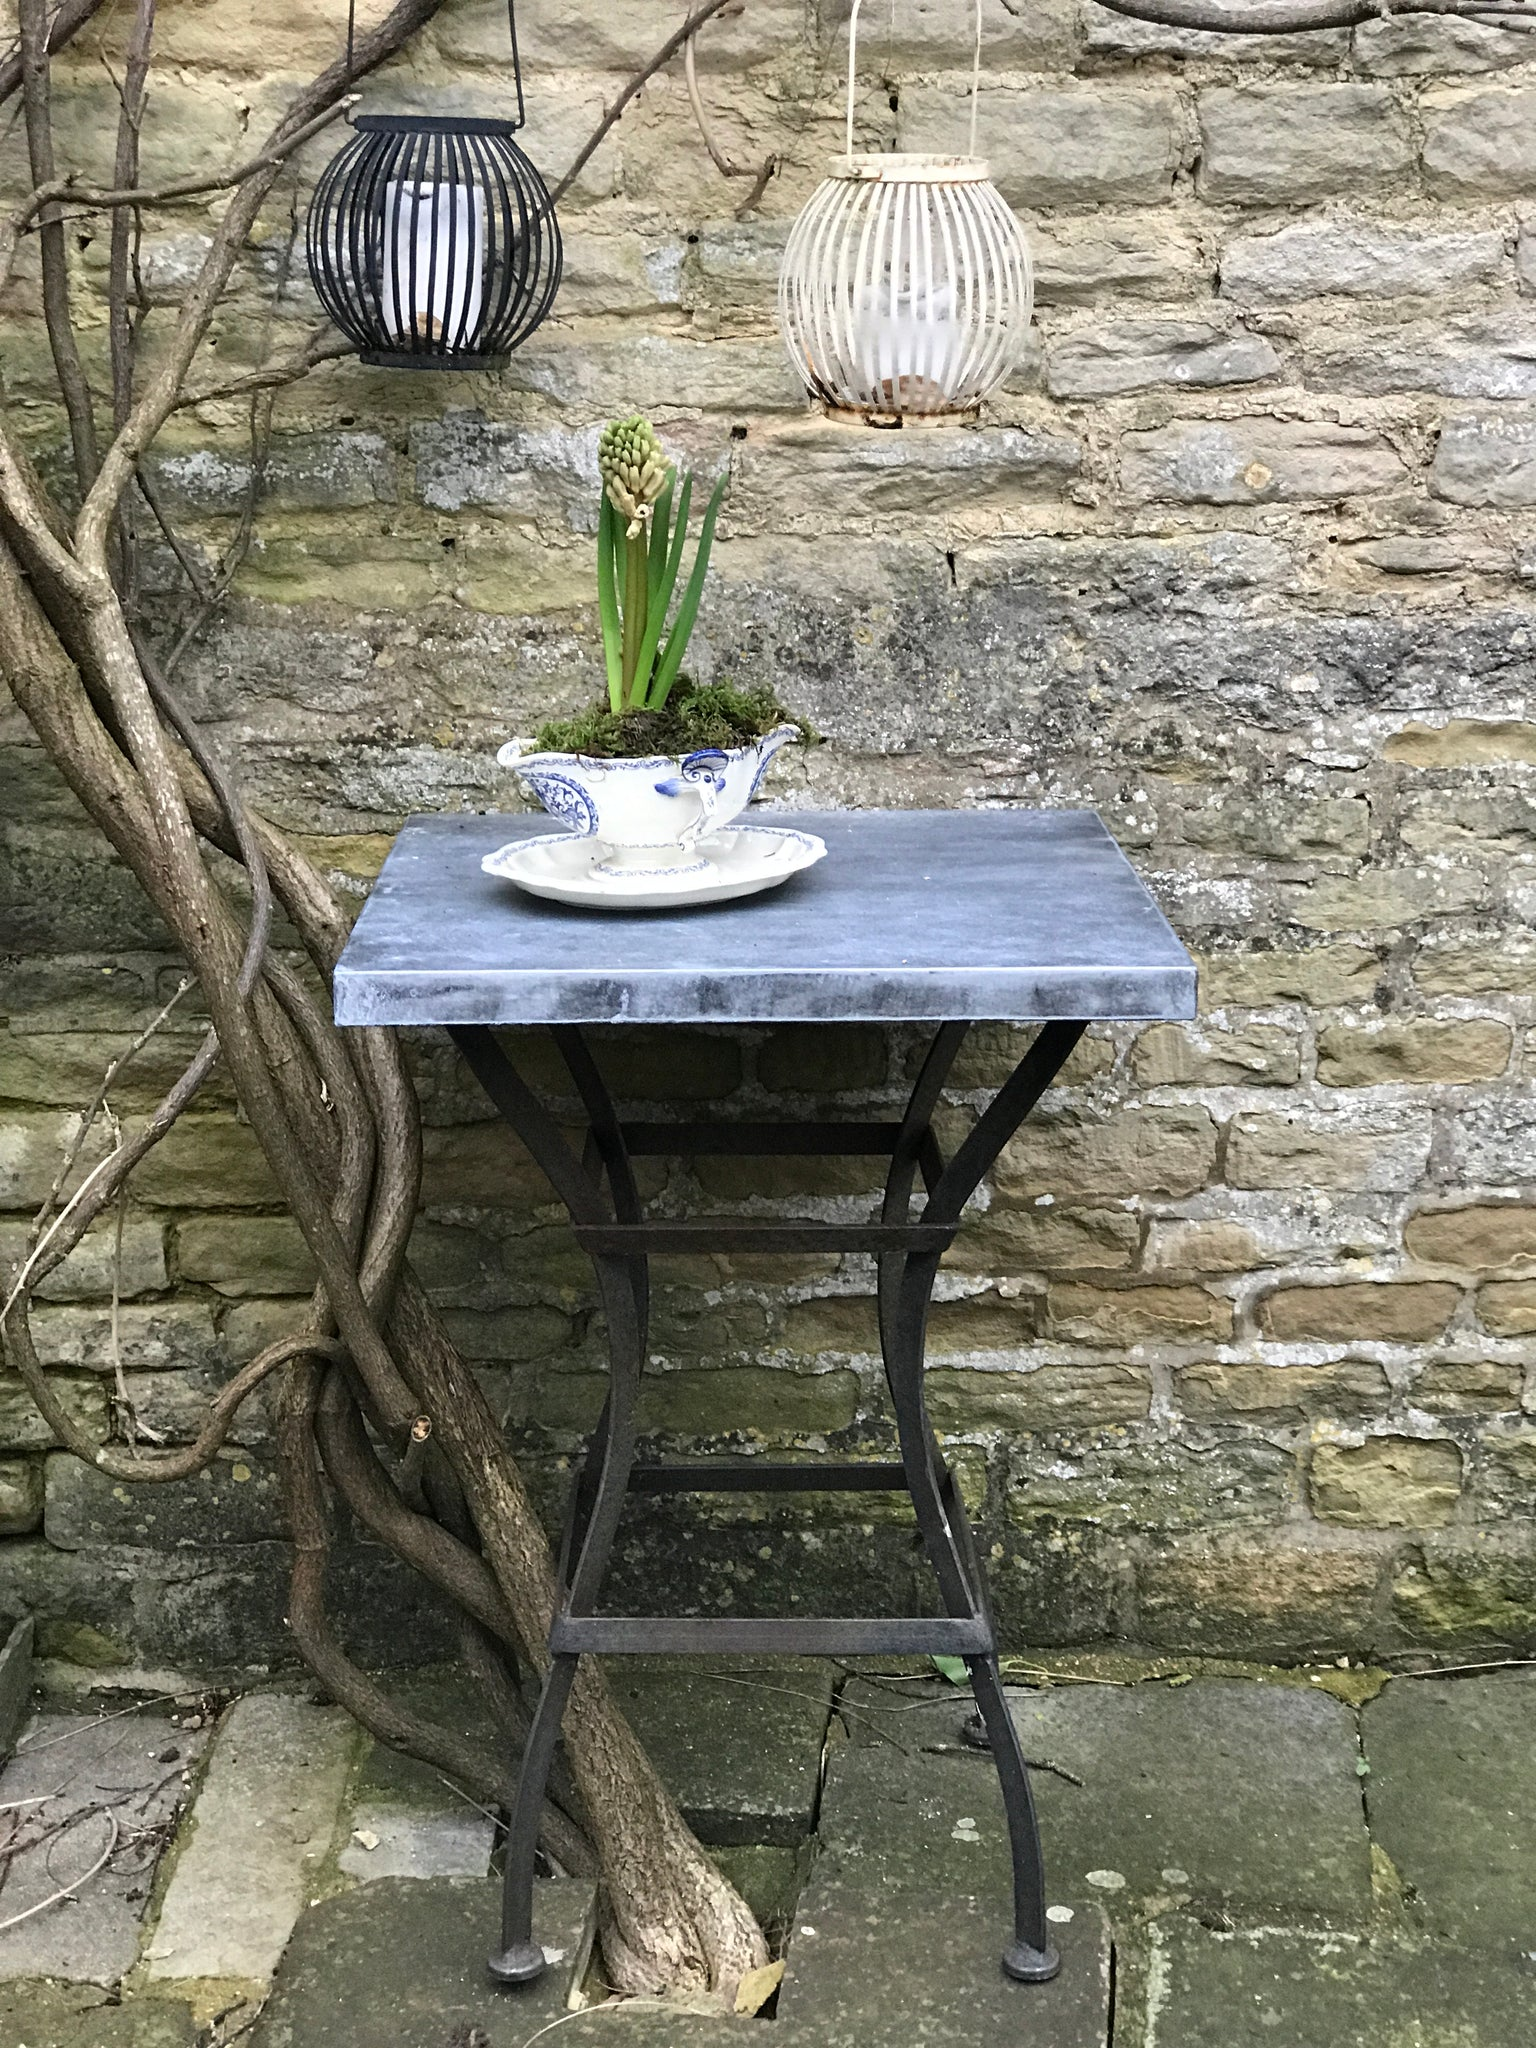 20th century Zinc Garden Cafe table on Iron base.